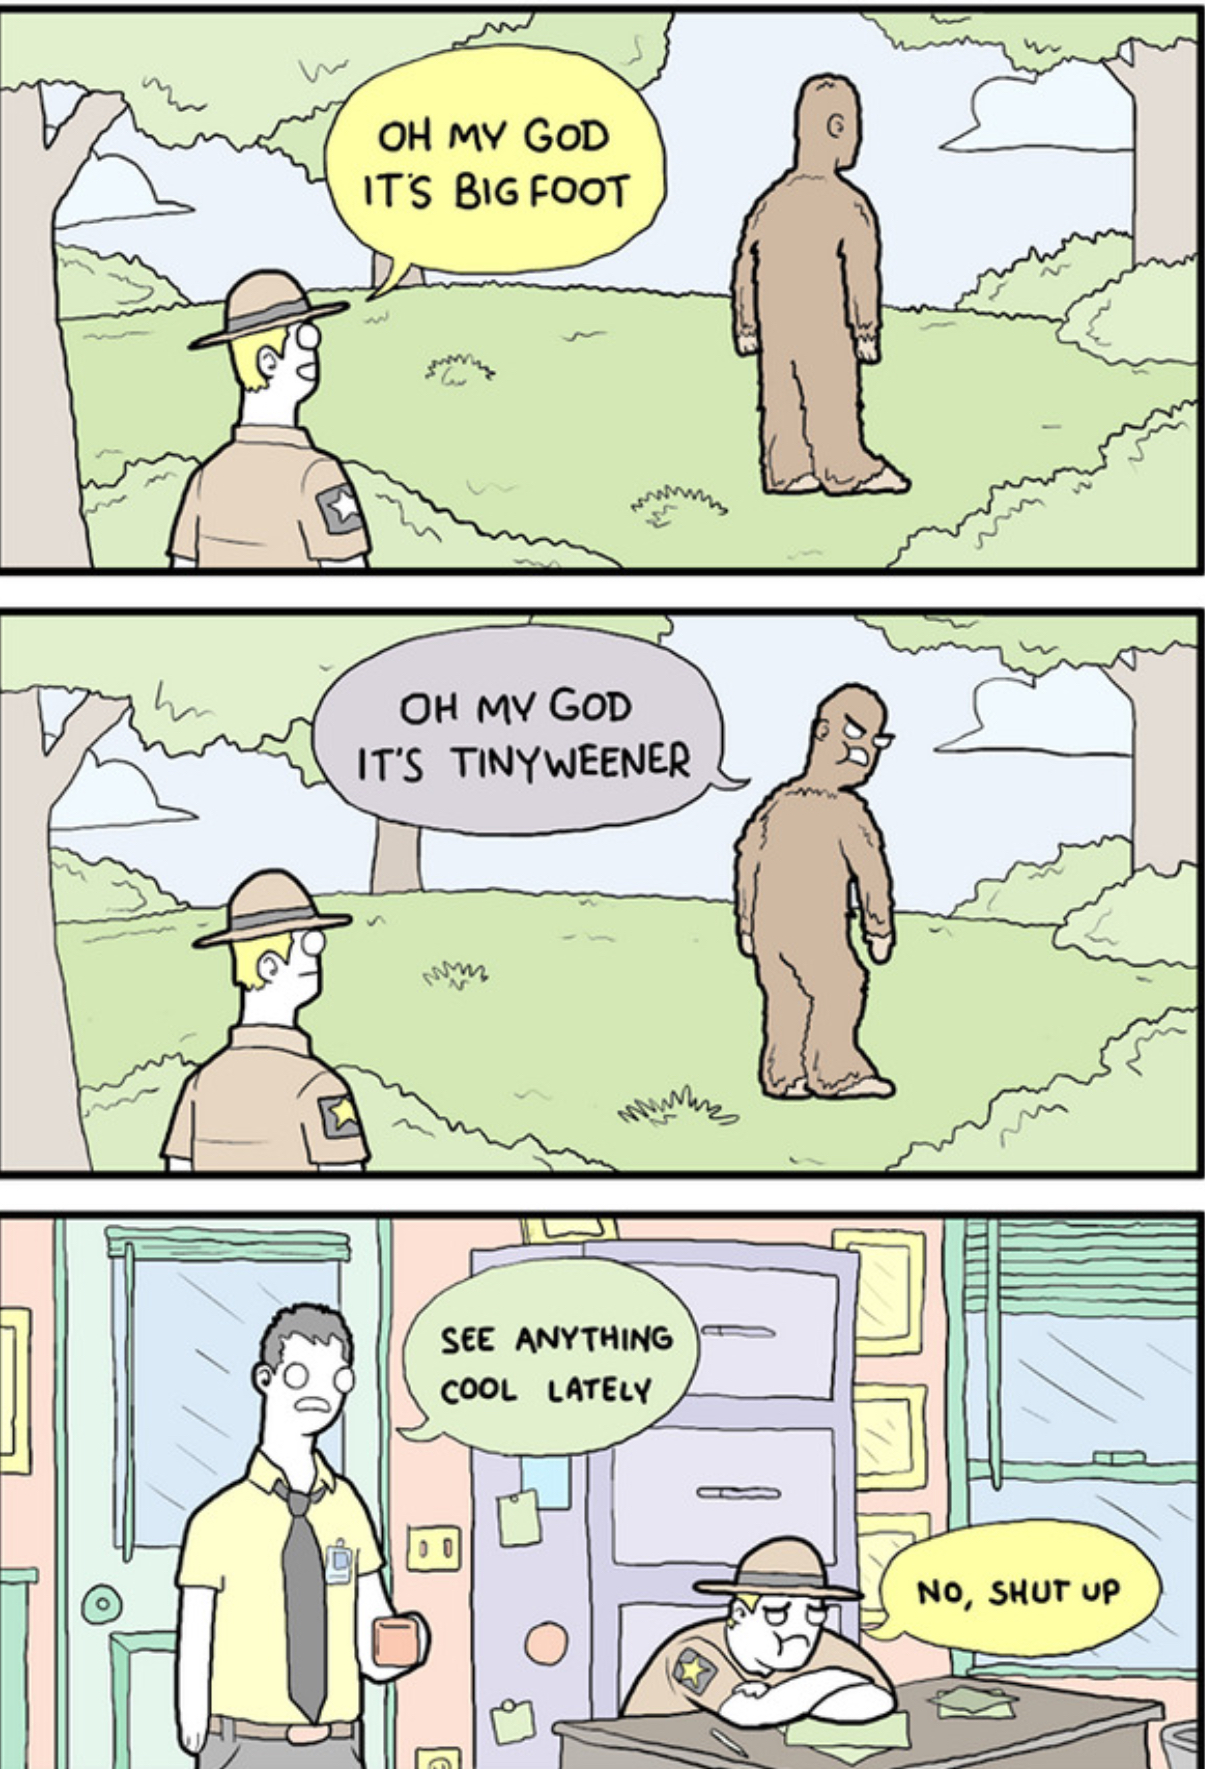 Fucked Up Bigfoot By Animation Sissy On Deviantart